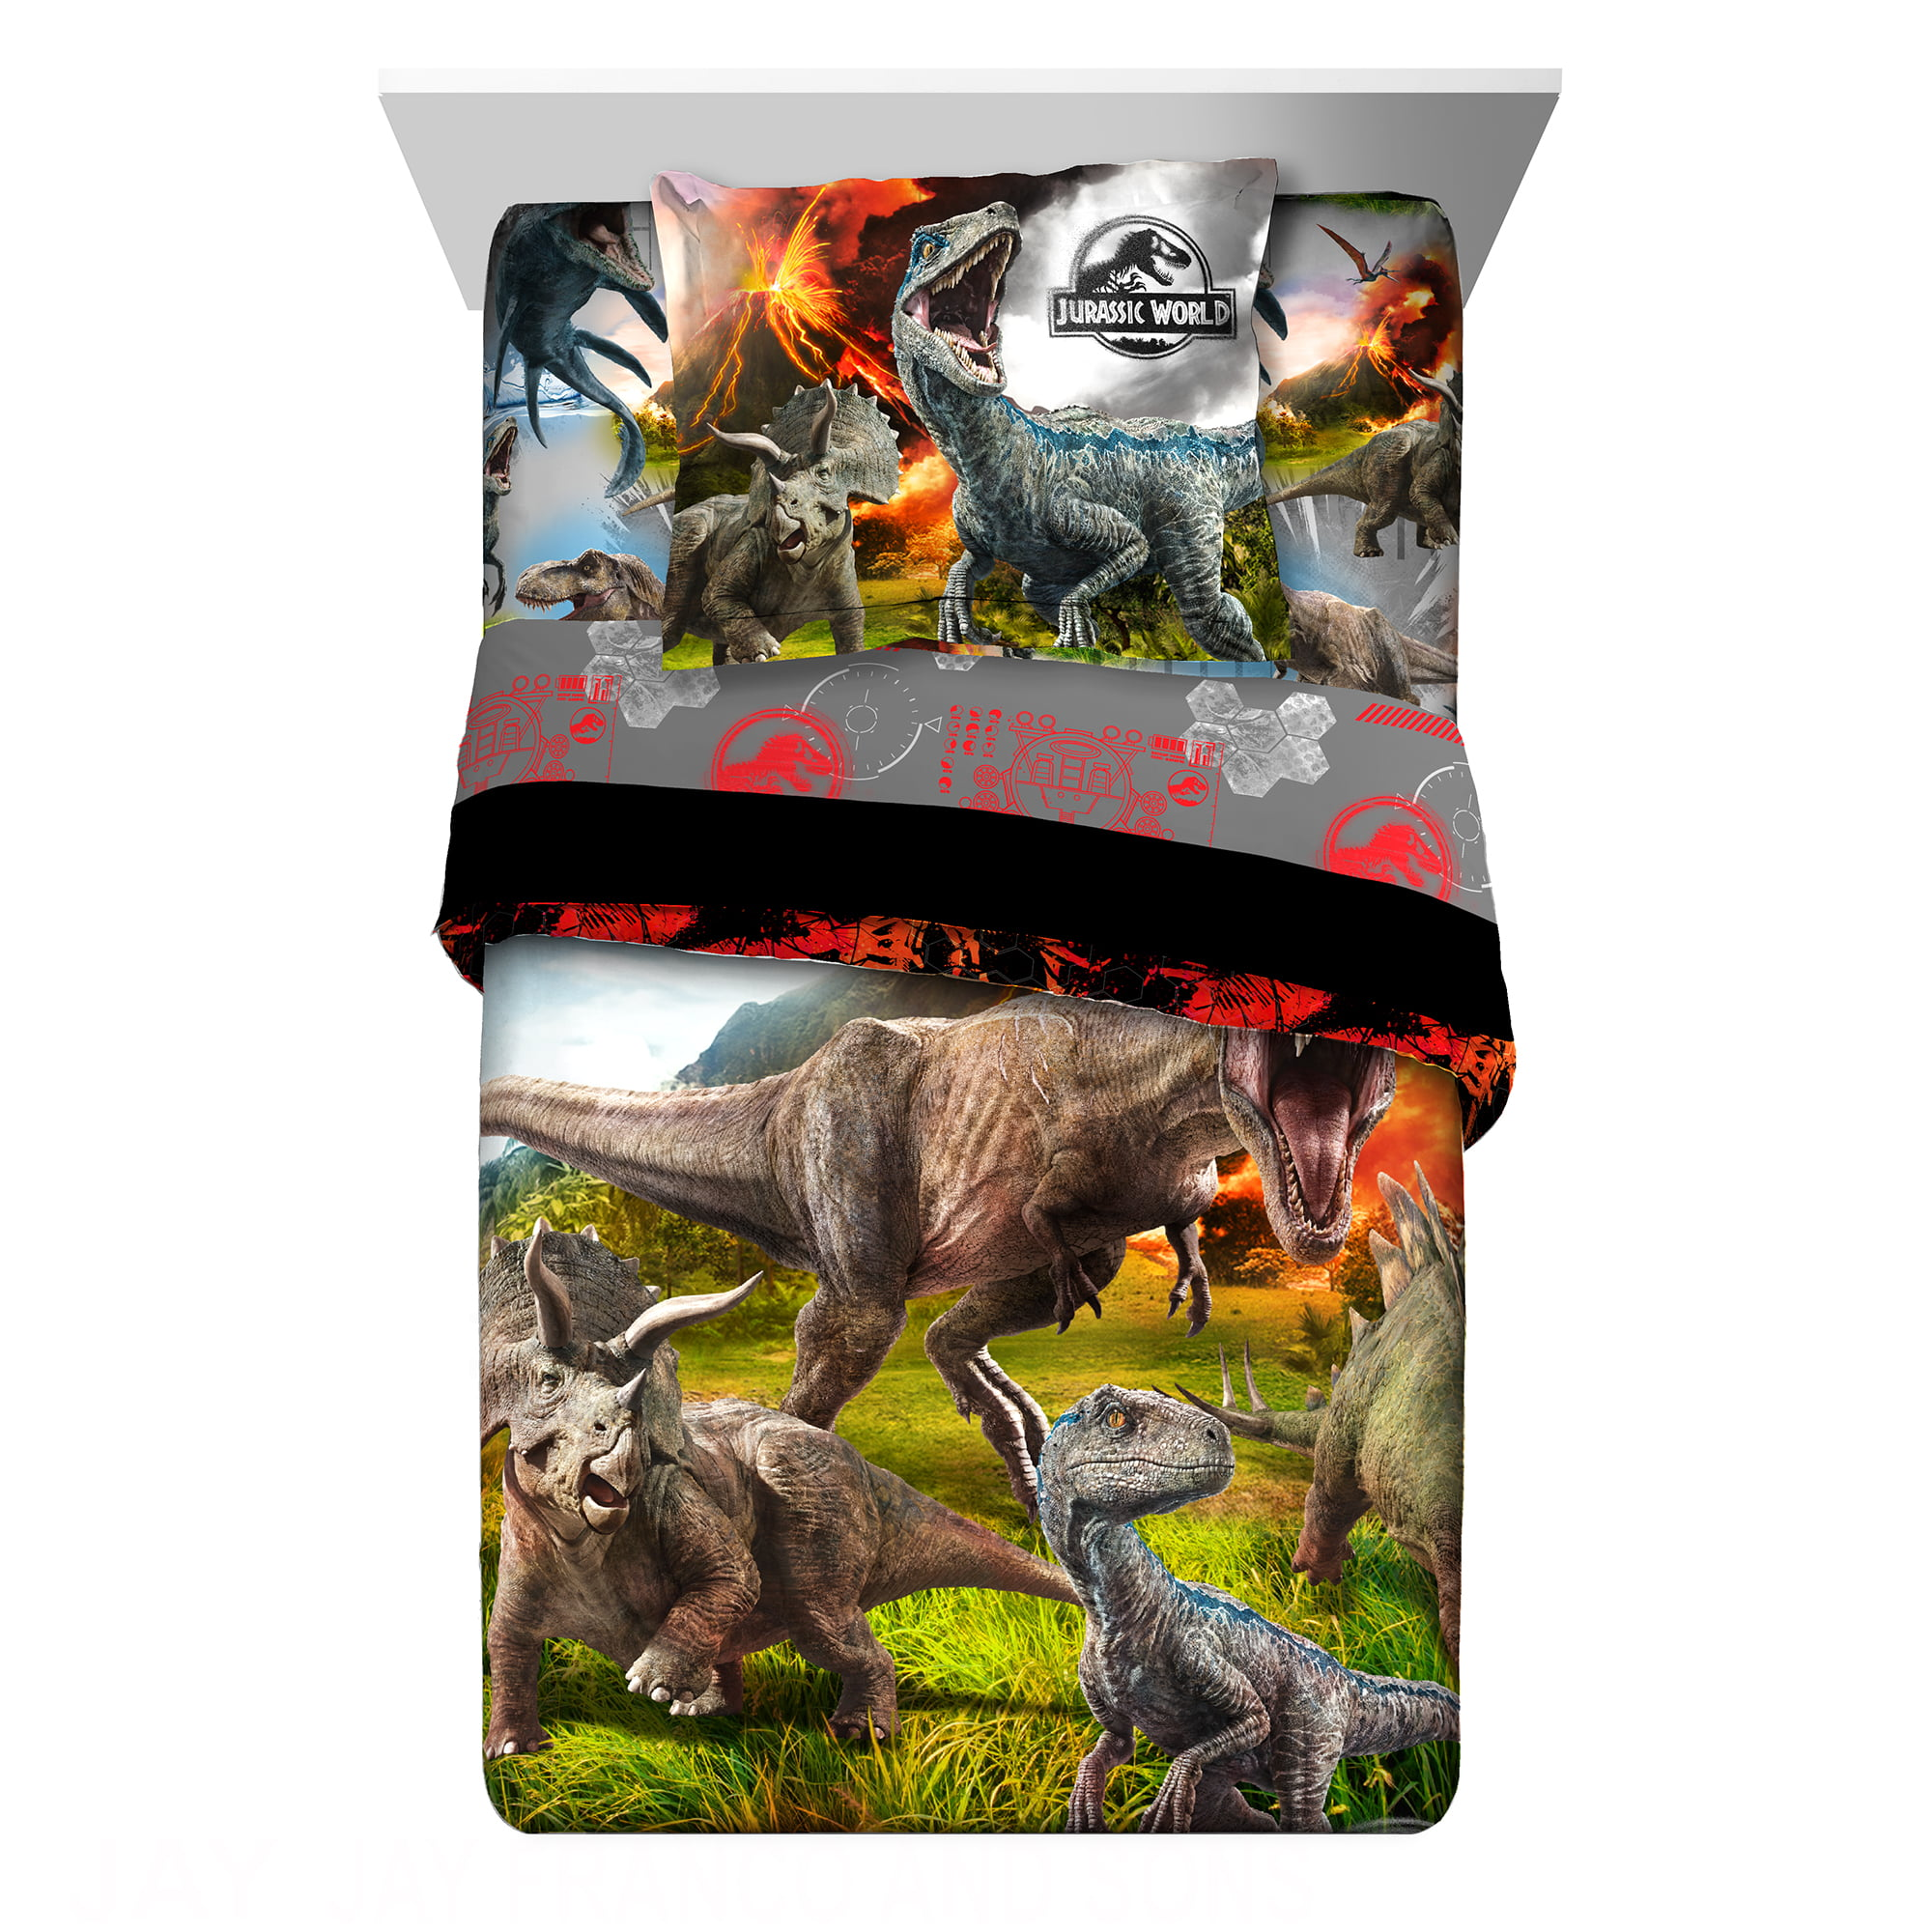 Universal Jurassic World 2 'Eruption' 2pc Kids Bedding Twin Full Comforter with Sham by Franco Manufacturing